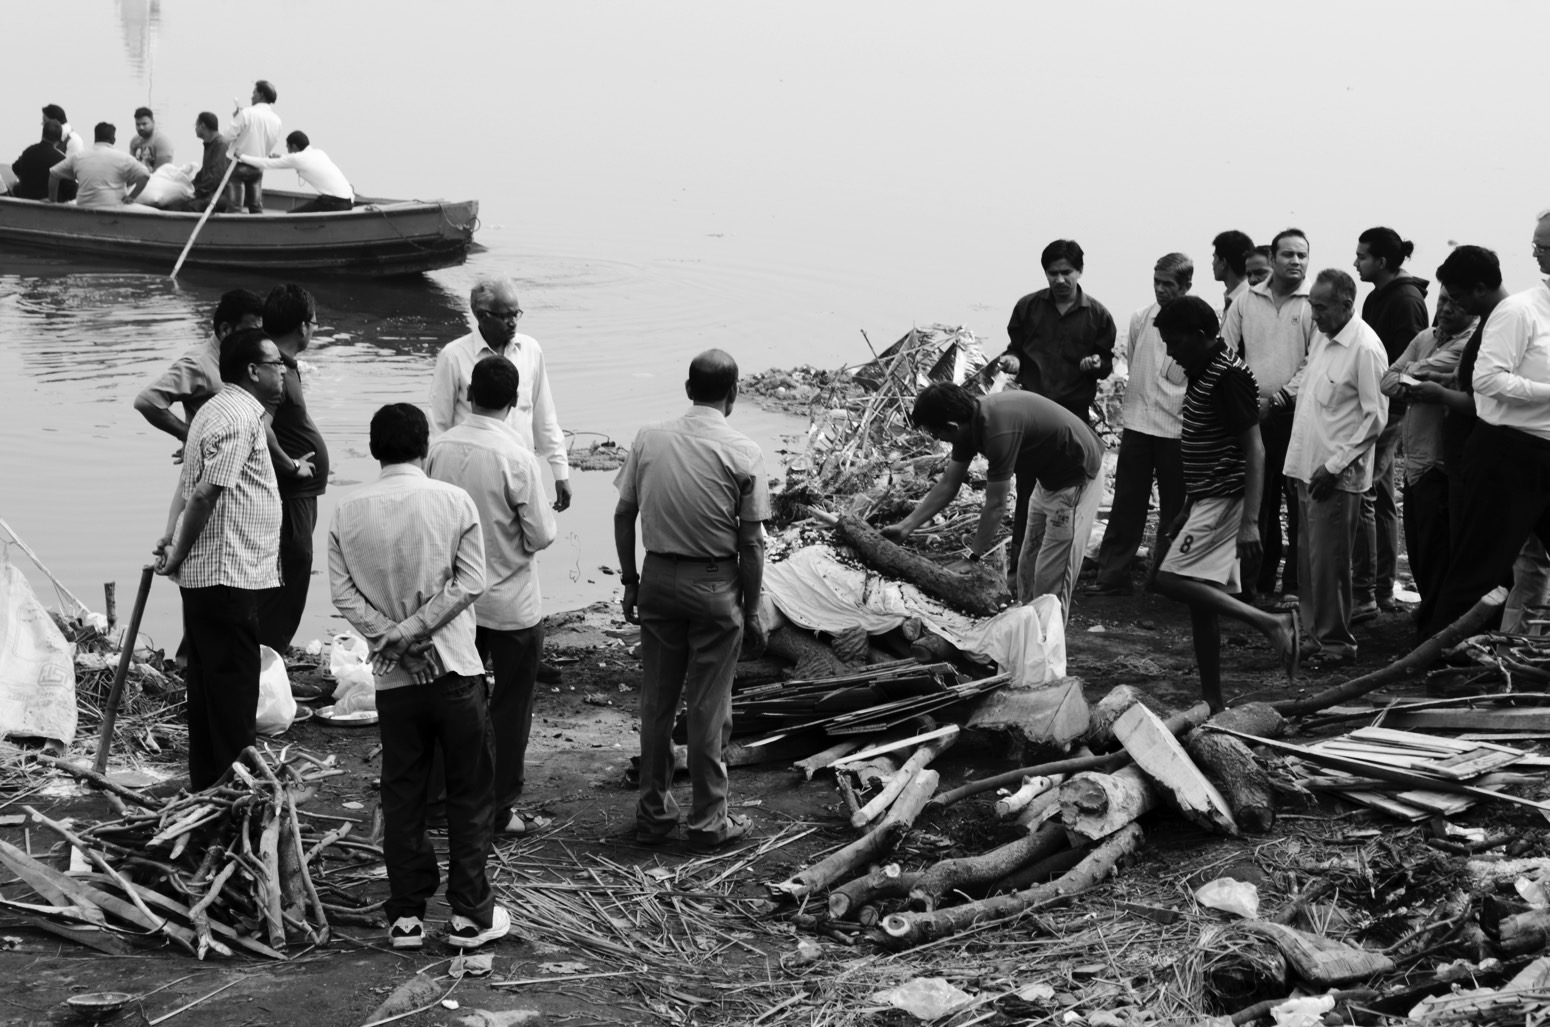 Last rituals of a dead body being carried out at the ghat. Credit: Wamika Singh